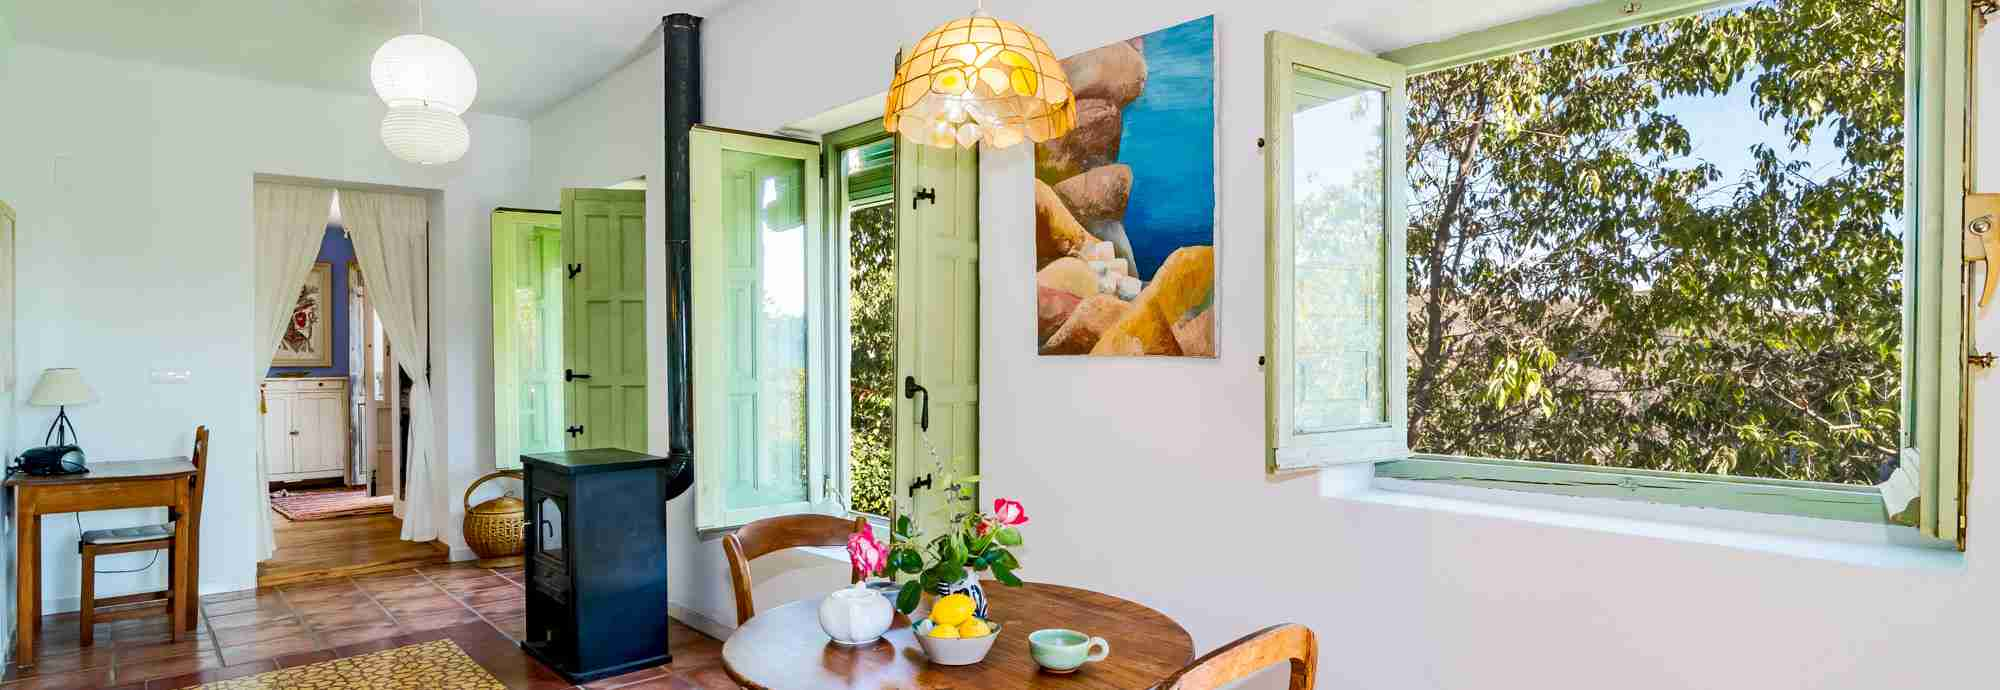 Intimate holiday cottage for two in Alpujarras mountain hamlet